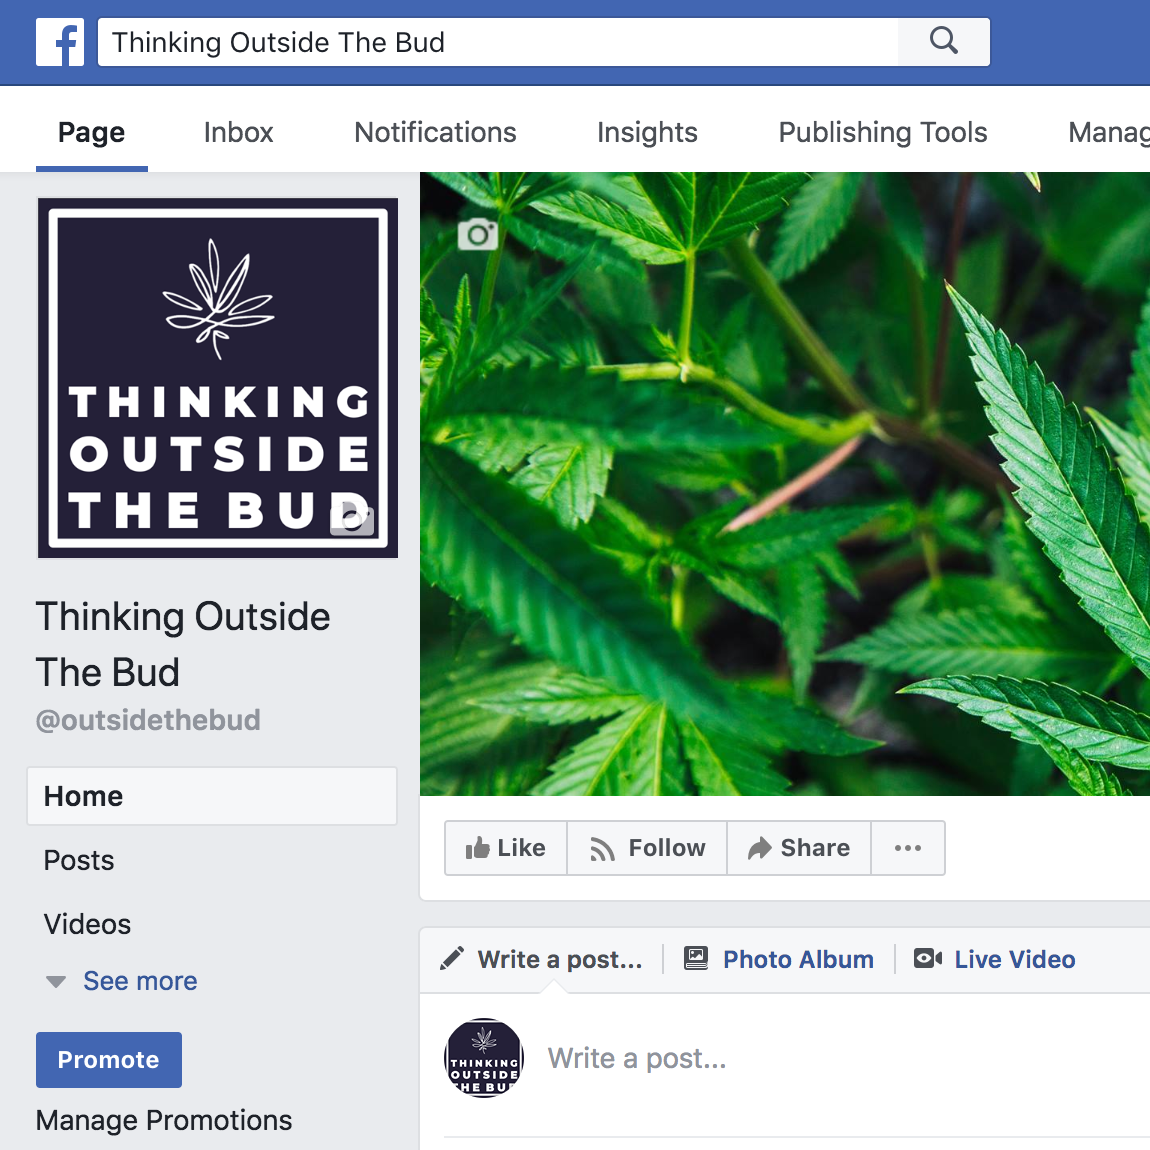 Thinking Outside The Bud - Facebook